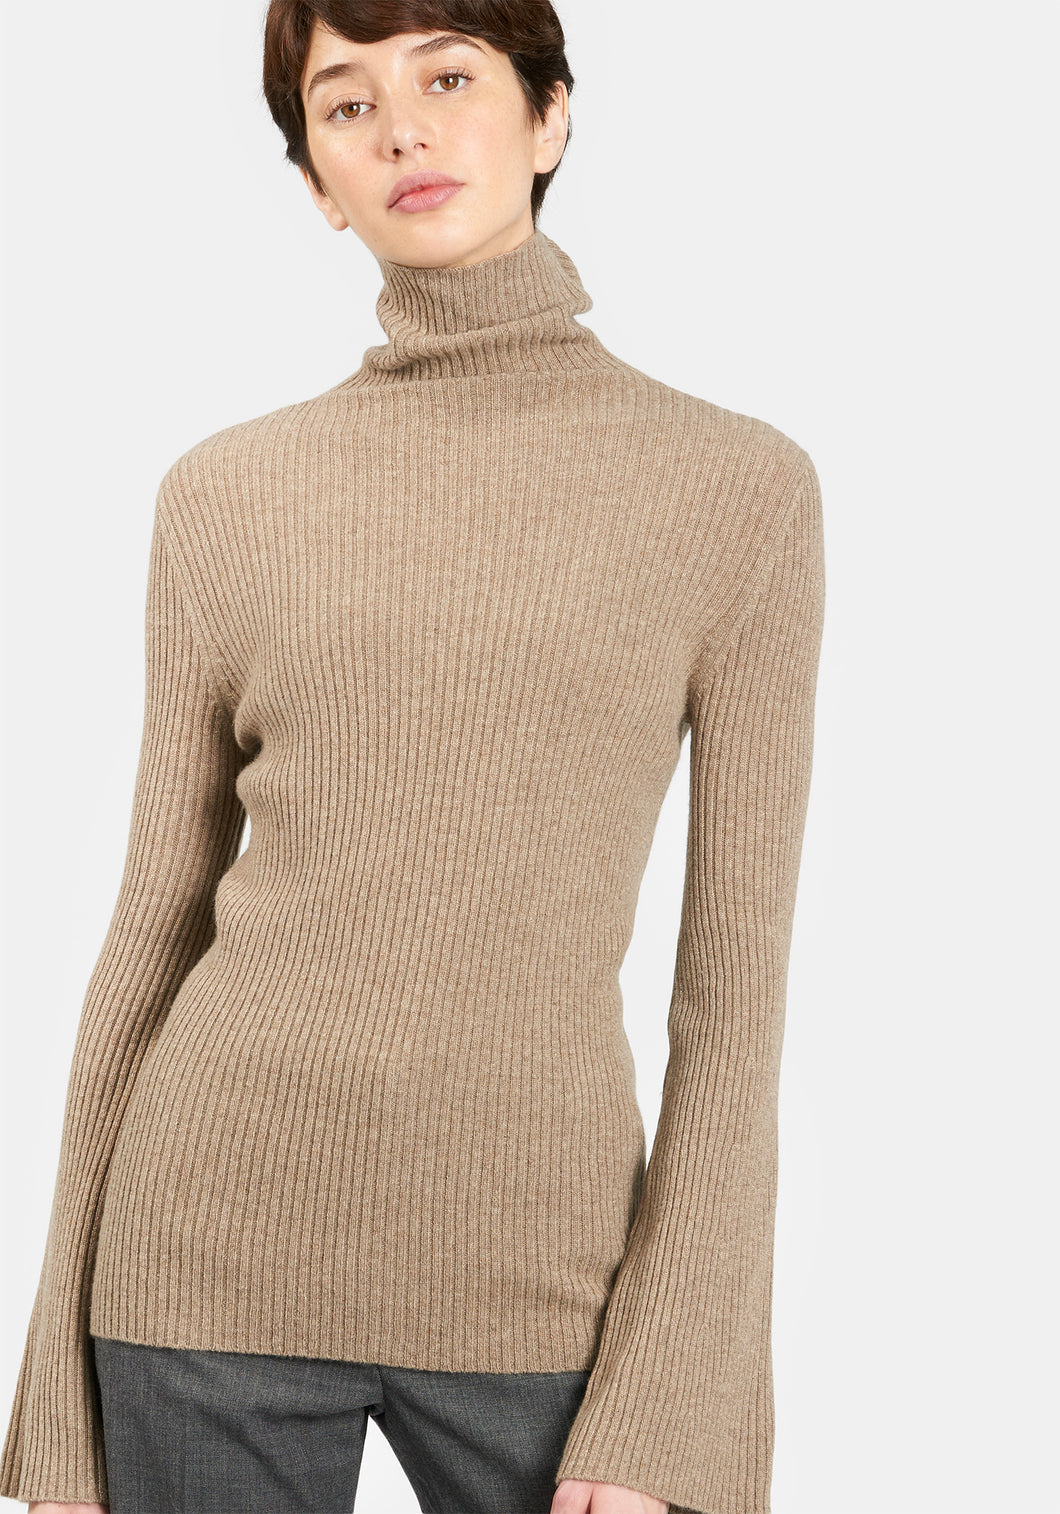 Bety Turtleneck